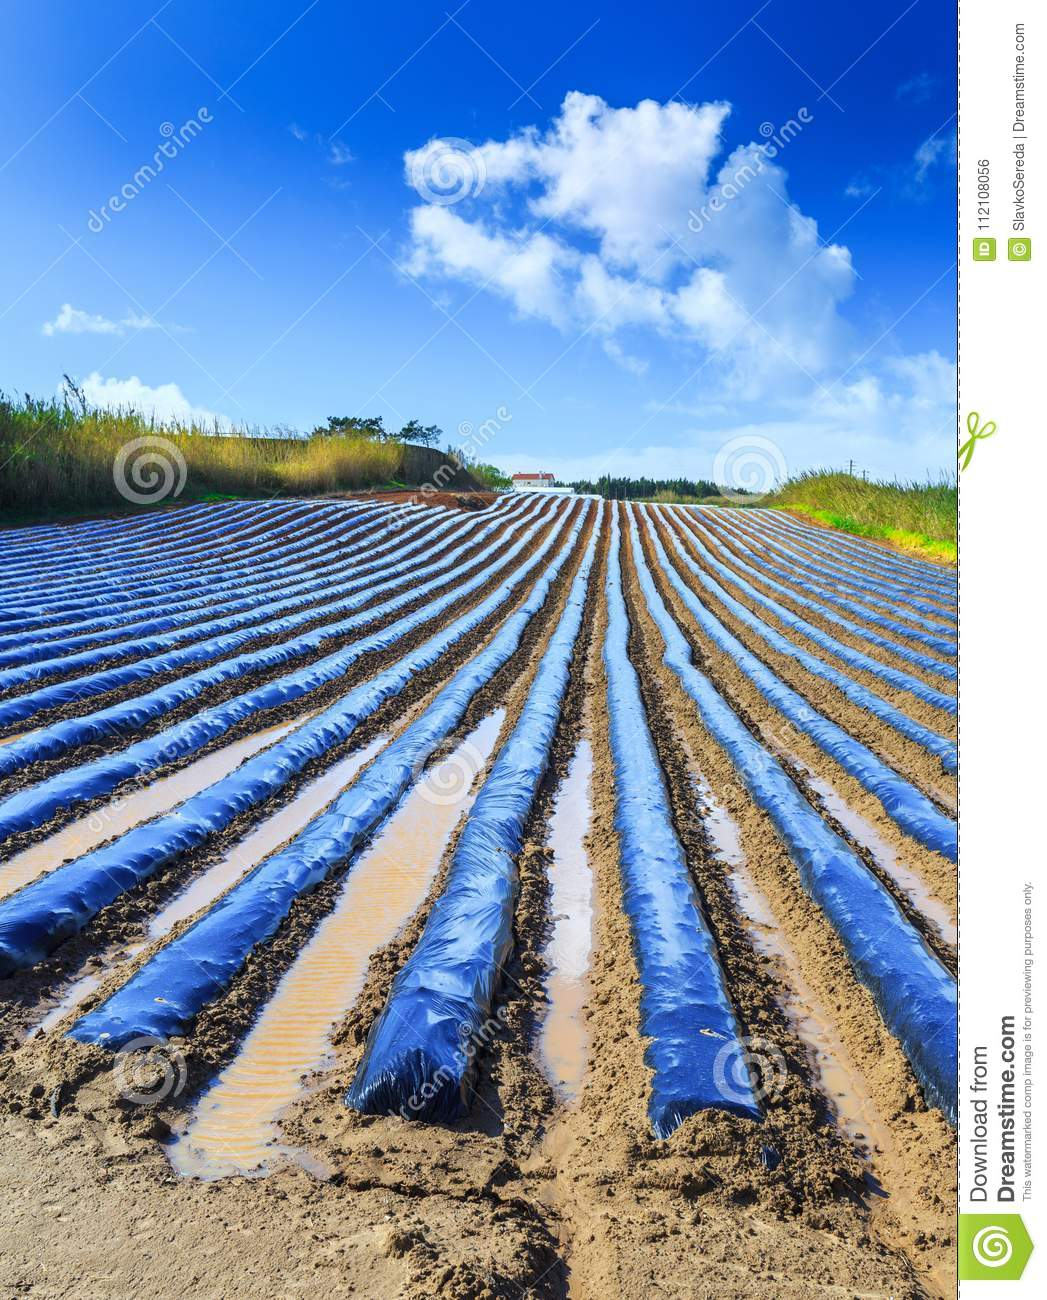 A typical agriculture technology of early spring cultivation of